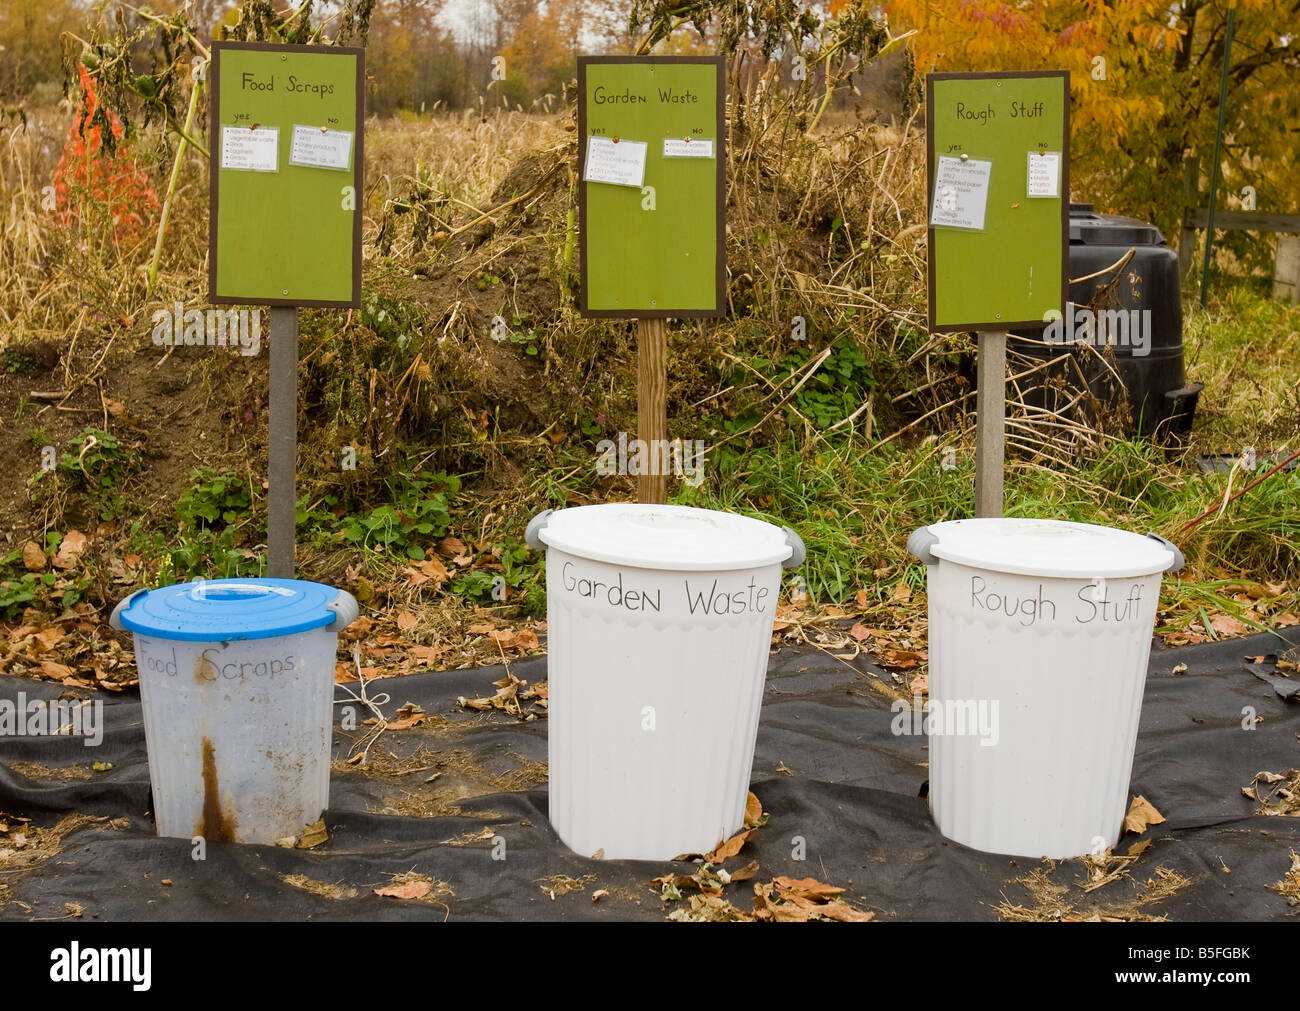 Containers to separate organic waste - Stock Image